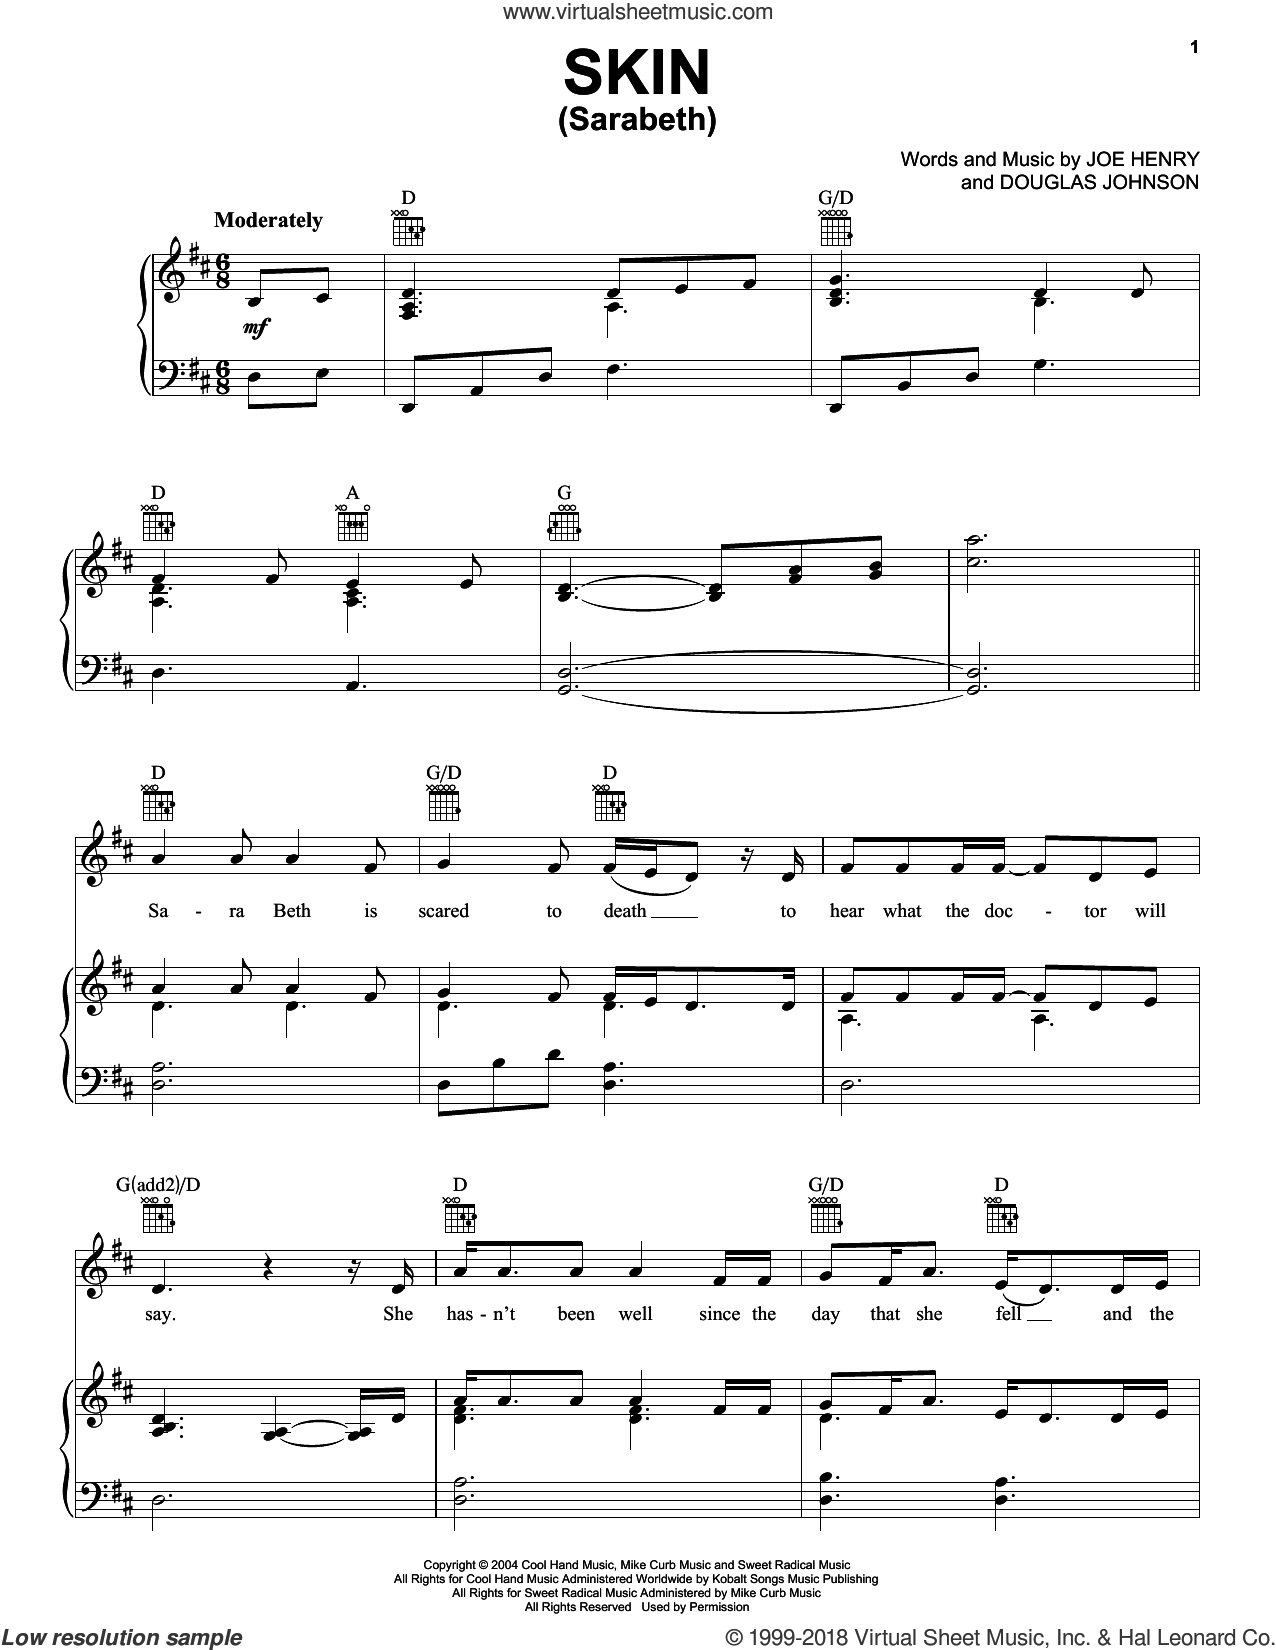 Skin (Sarabeth) sheet music for voice, piano or guitar by Joe Henry